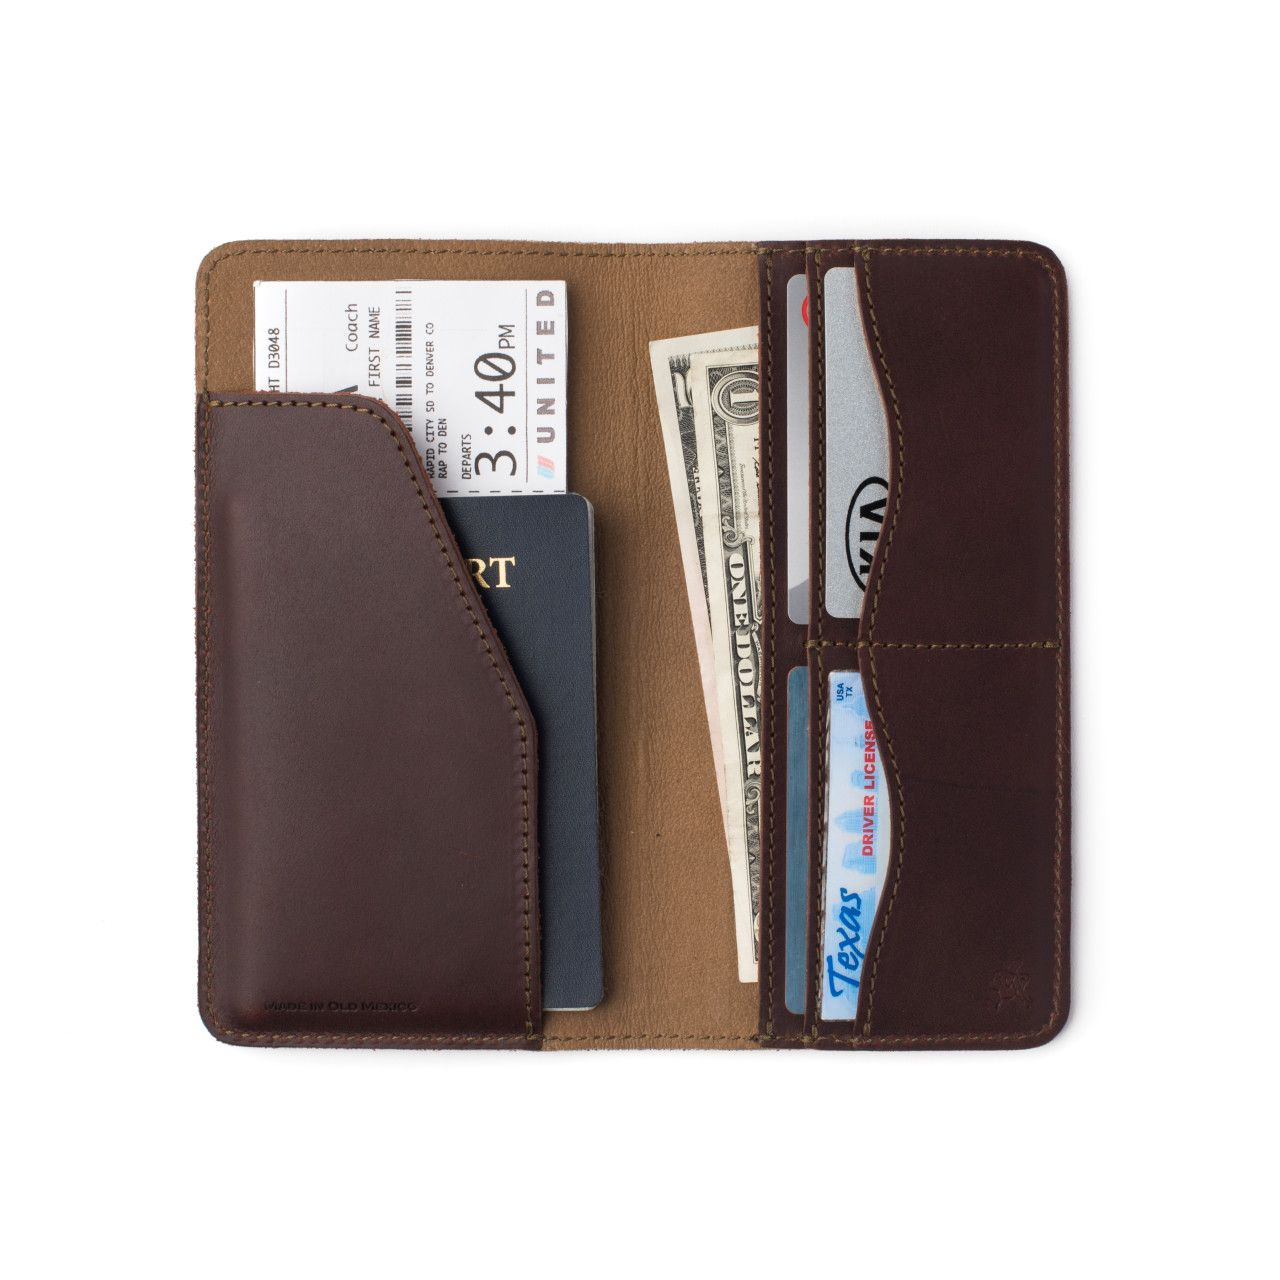 long leather passport wallet medium in chestnut leather with passport, cash, check cards, business cards